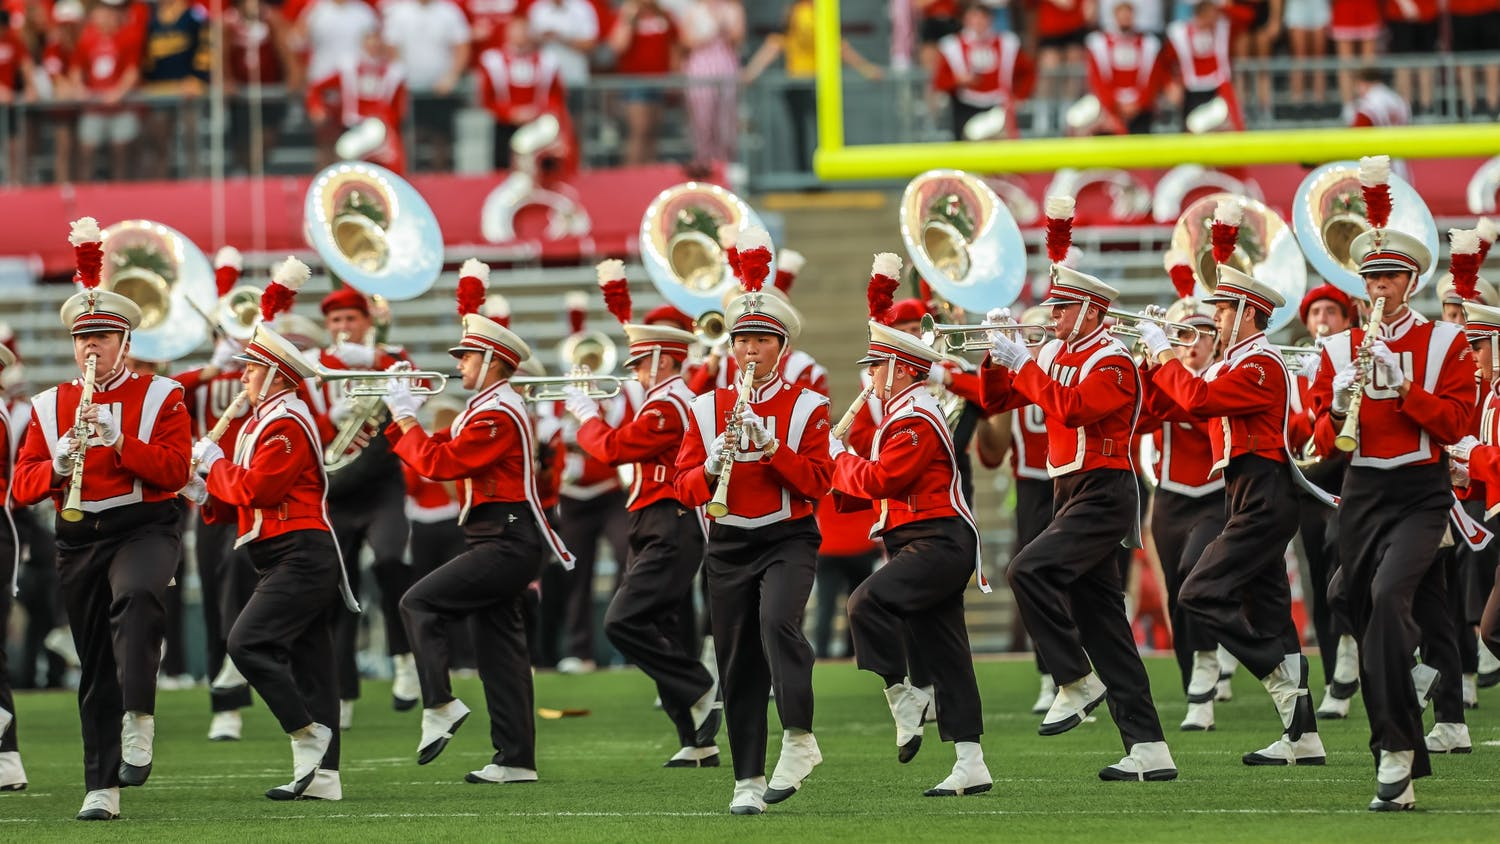 Photo of the UW Marching Band.